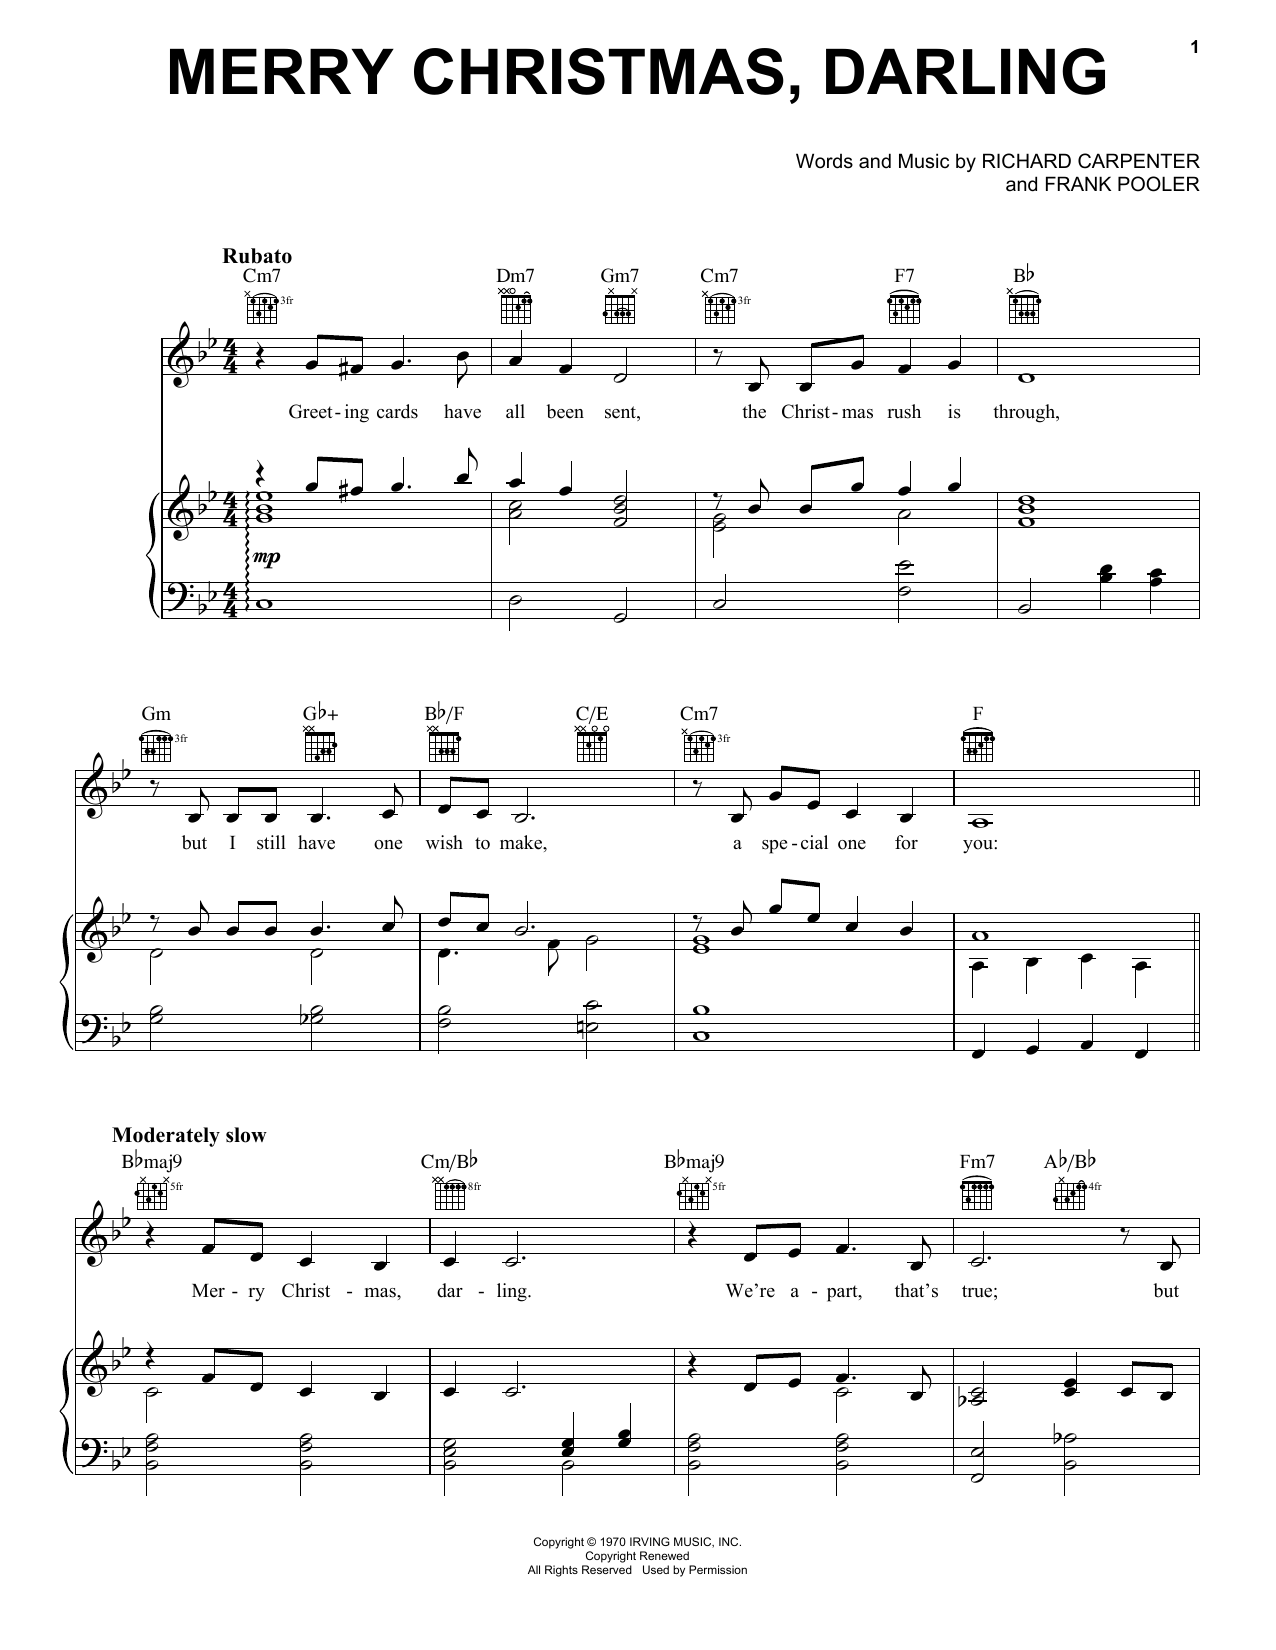 Carpenters Merry Christmas, Darling sheet music notes printable PDF score